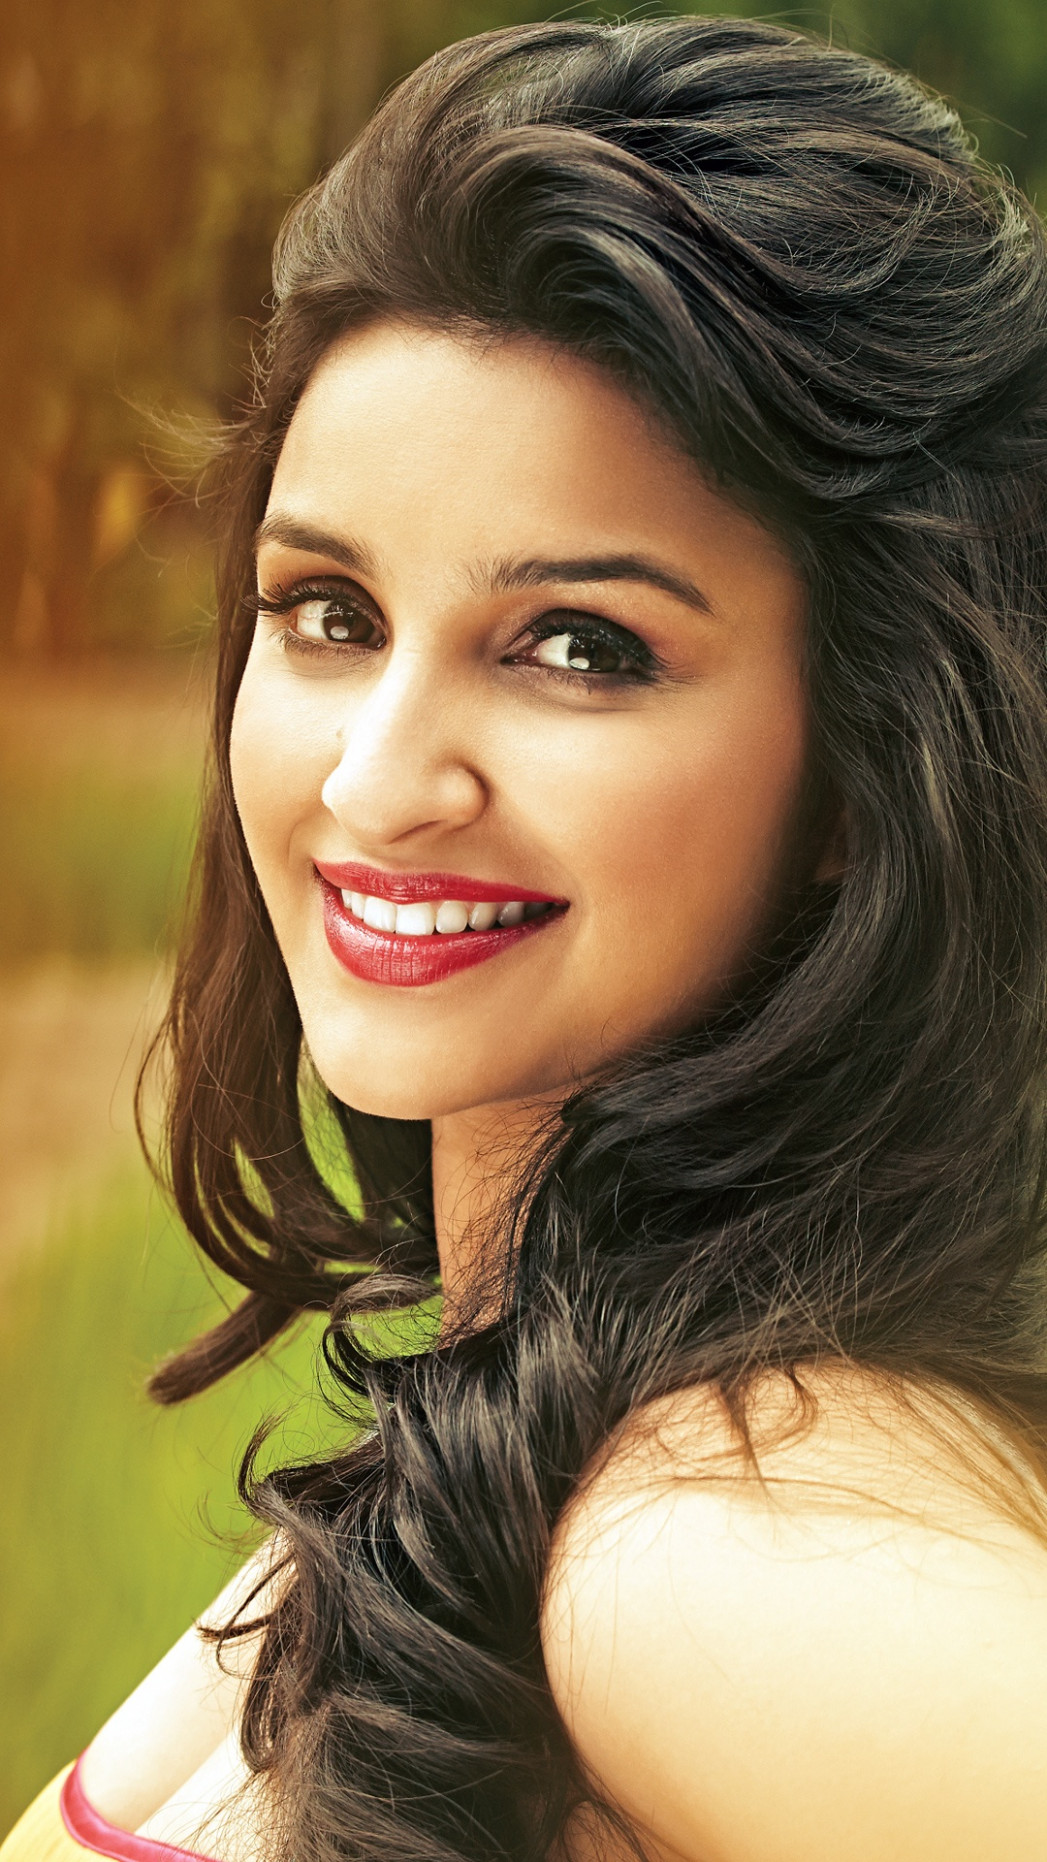 Parineeti Chopra 2016 Bollywood Wallpapers in jpg format ...